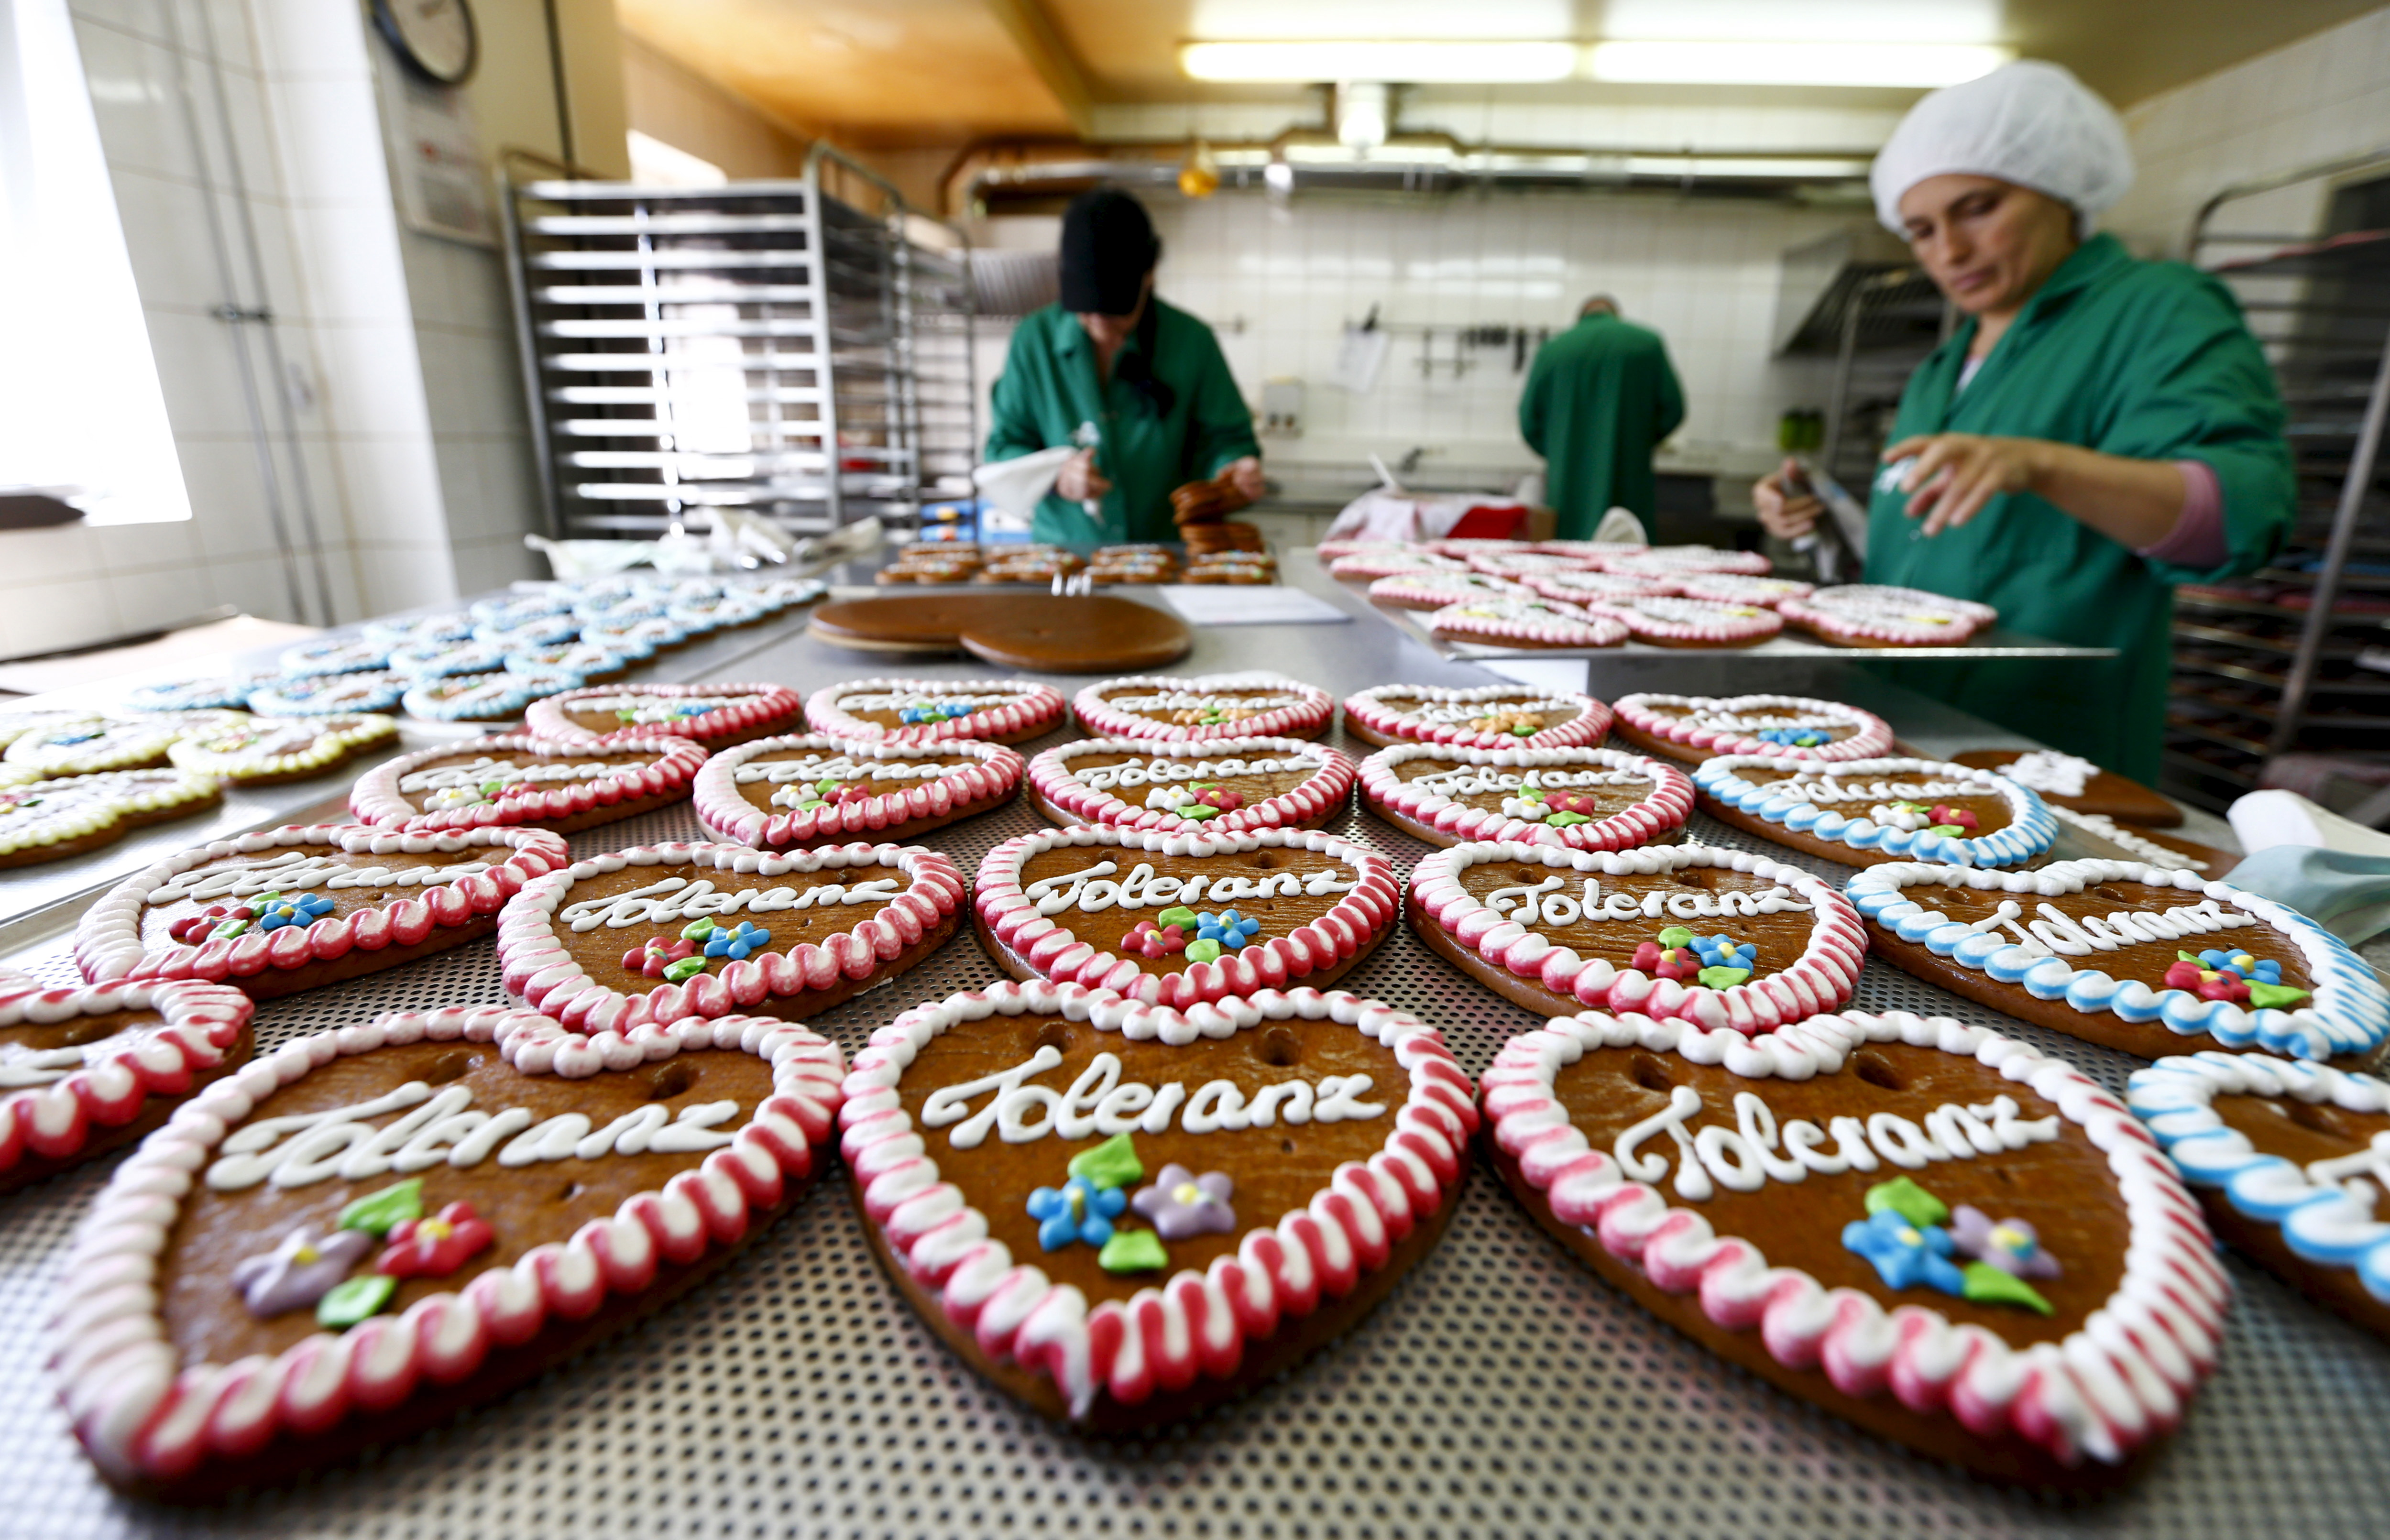 Women decorate gingerbread Oktoberfest hearts with icing at the Fesey company factory in Munich, Germany September 15, 2015. Fesey will produce about 1000 gingerbread hearts with the word 'tolerance' for the upcoming Oktoberfest. The proceeds will go toward the Caritas charity organisation. REUTERS/Michaela Rehle - RTS1861